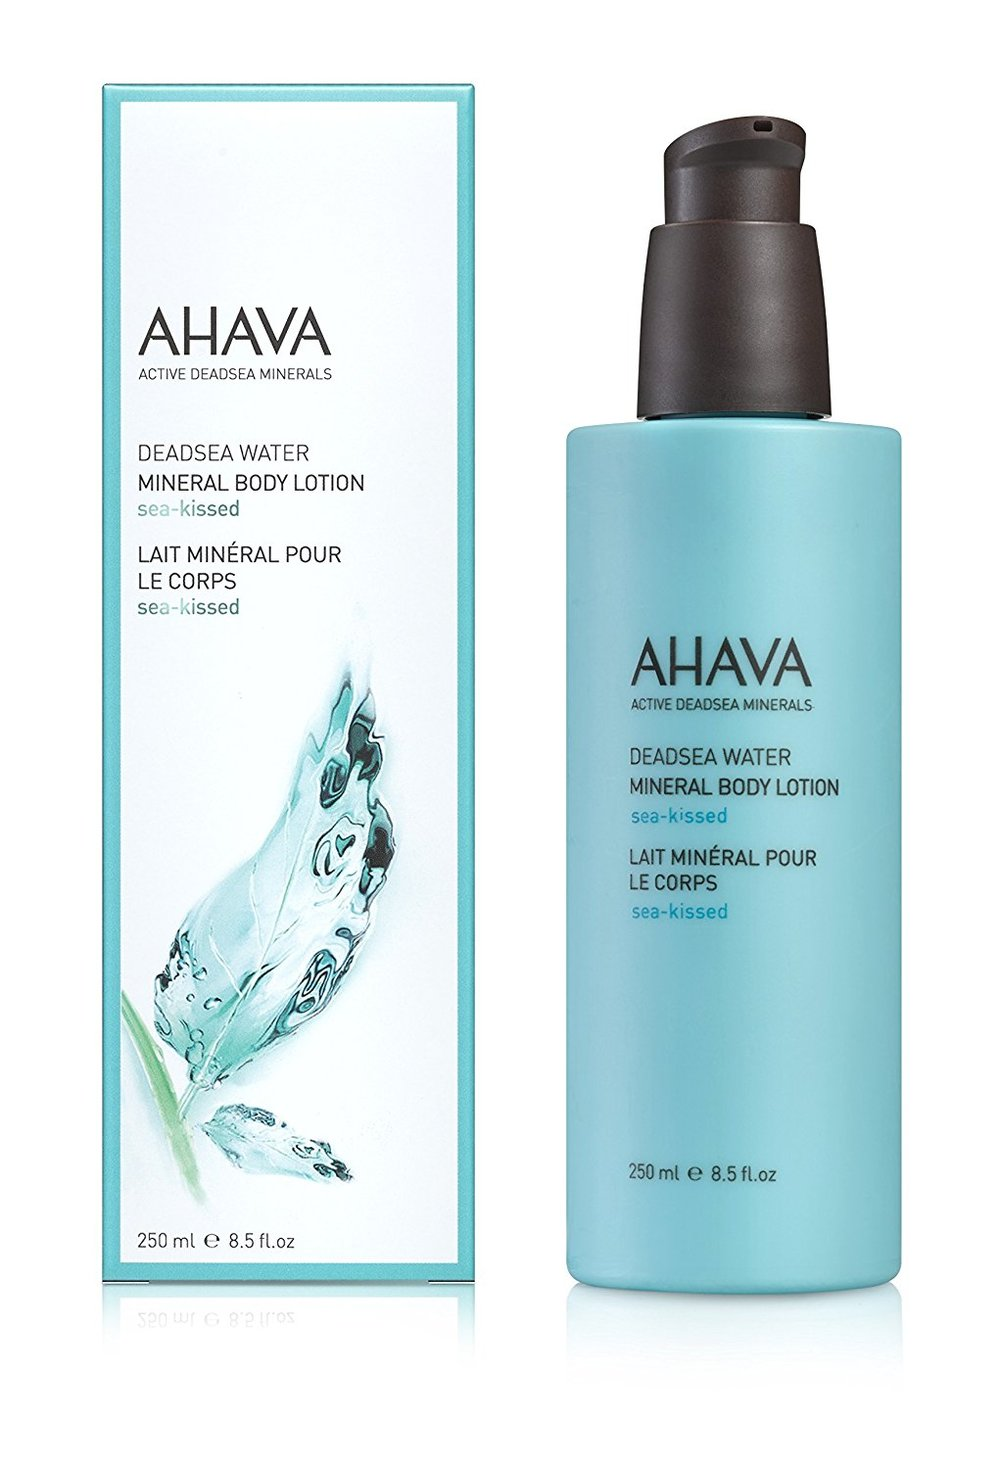 Ahava Mineral Body Lotion in Sea-Kissed ($28)